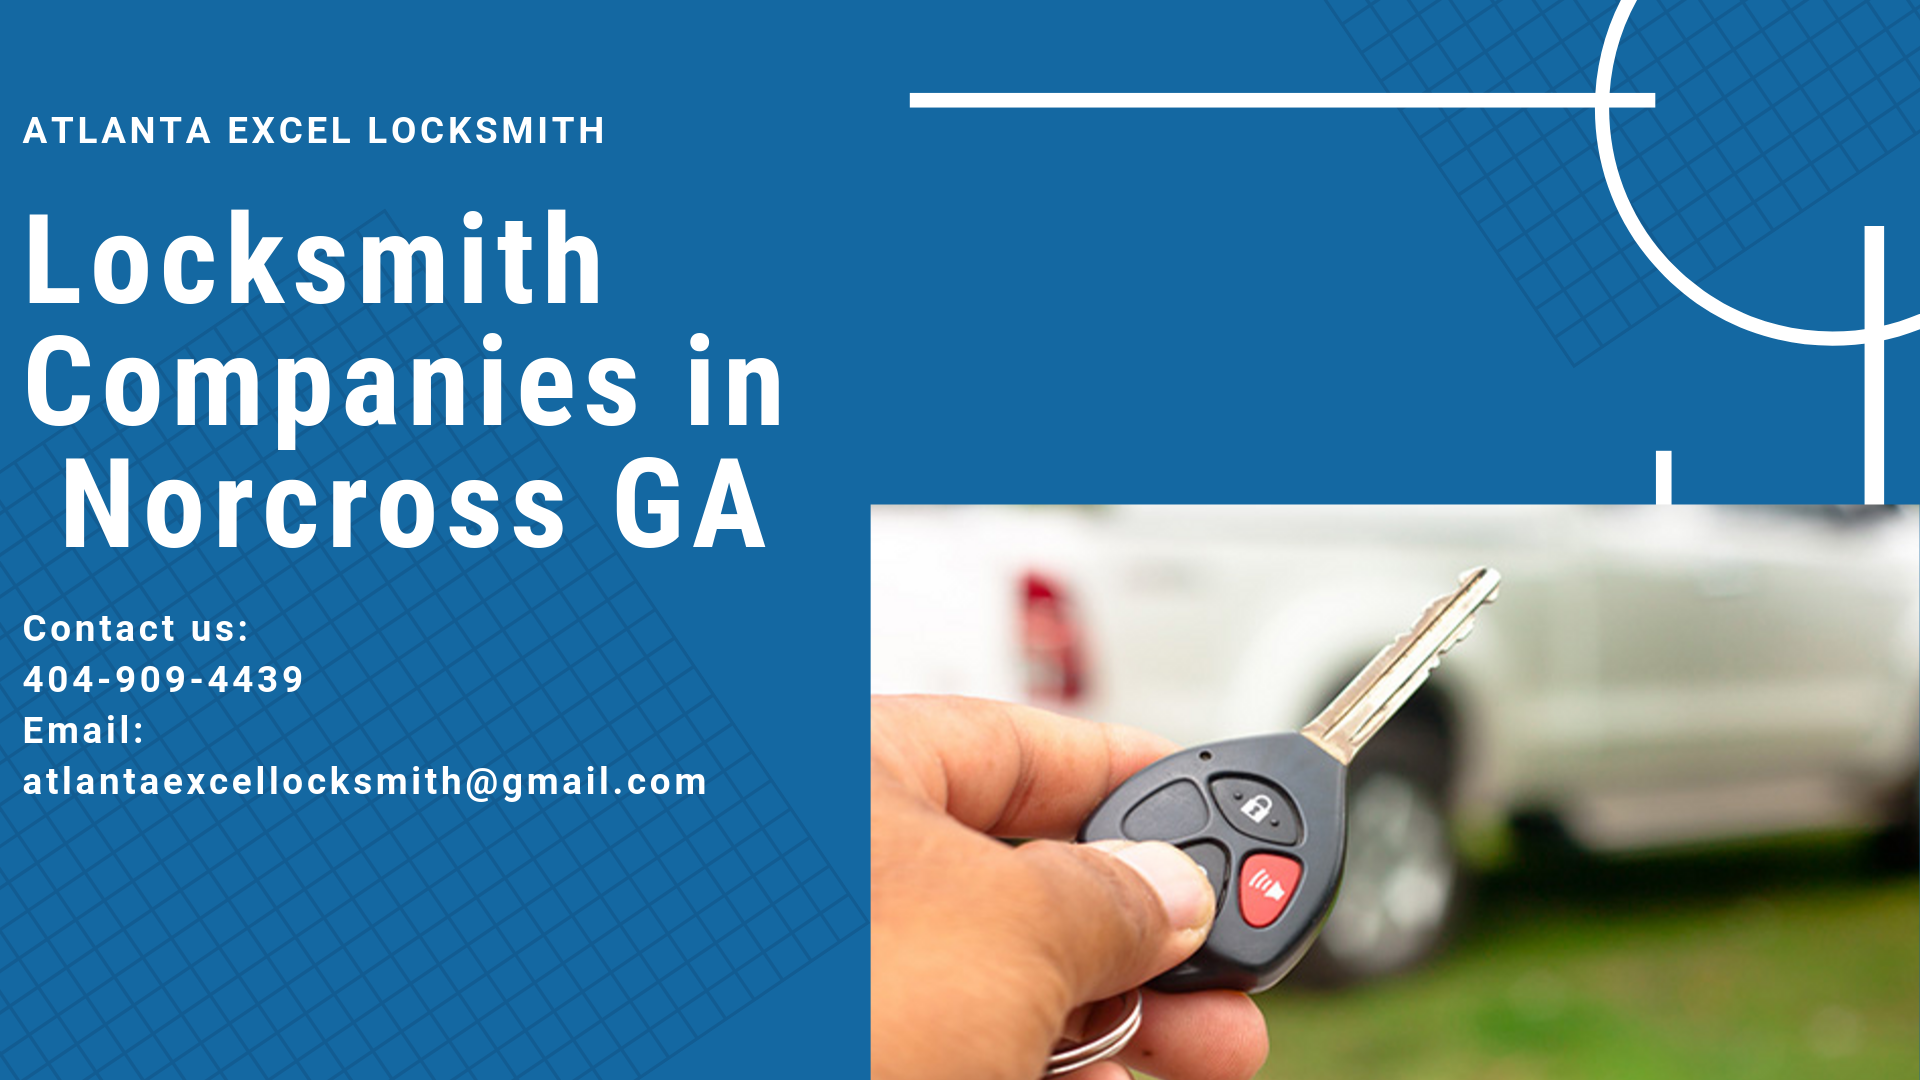 24 Hour Locksmith in Norcross GA Locksmith Number in